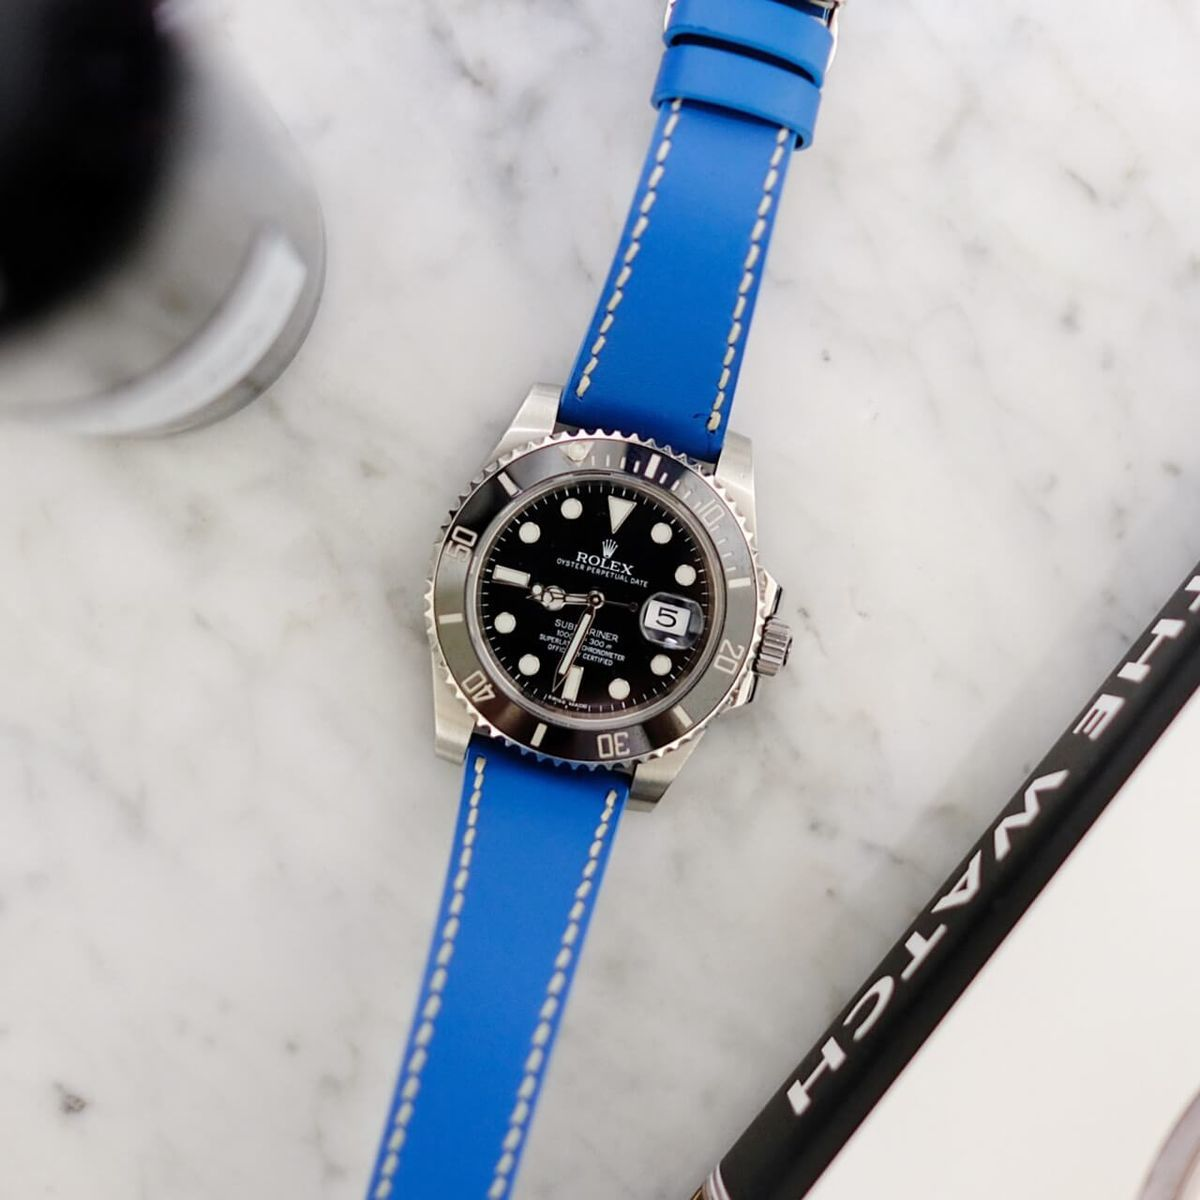 Rolex Submariner with bespoke strap by Jean Rousseau